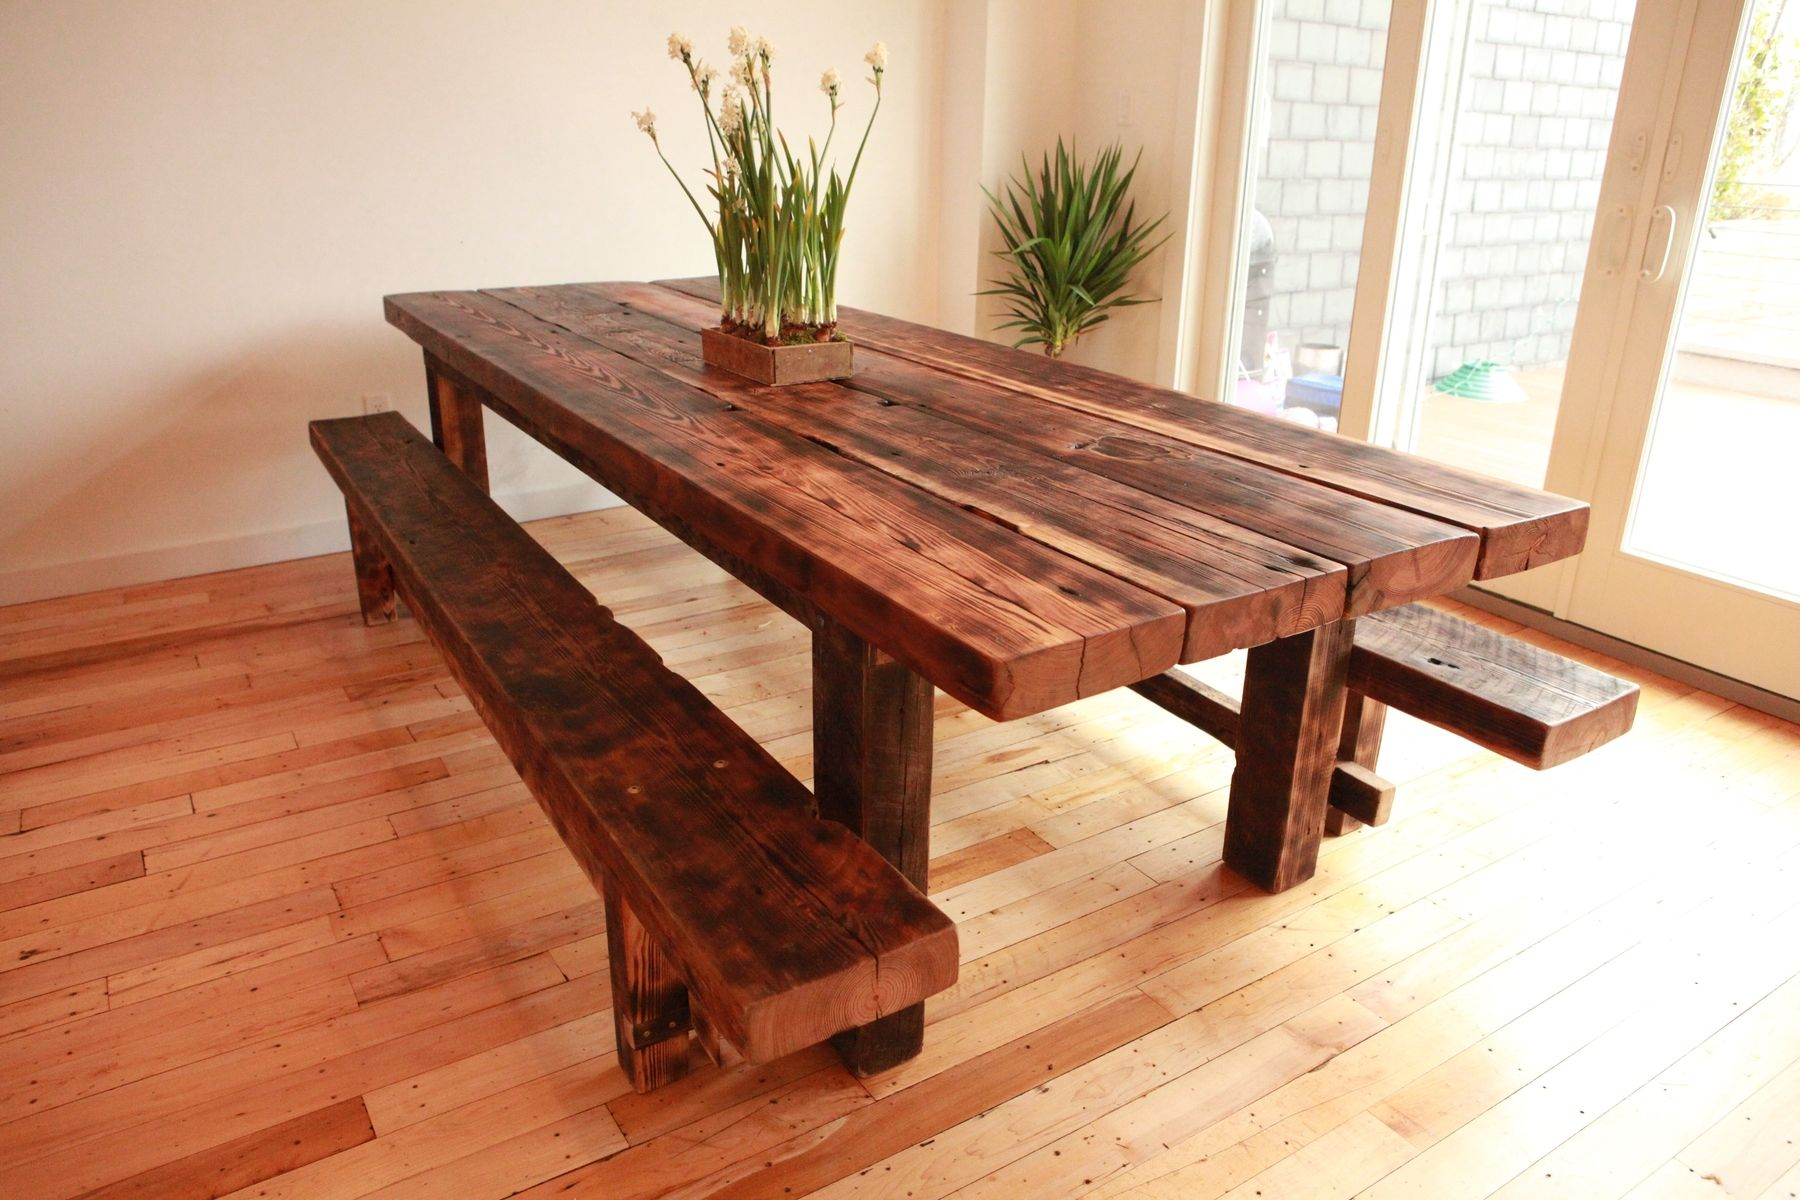 Handmade Custom Farmhouse Dining Table And Benches For ...